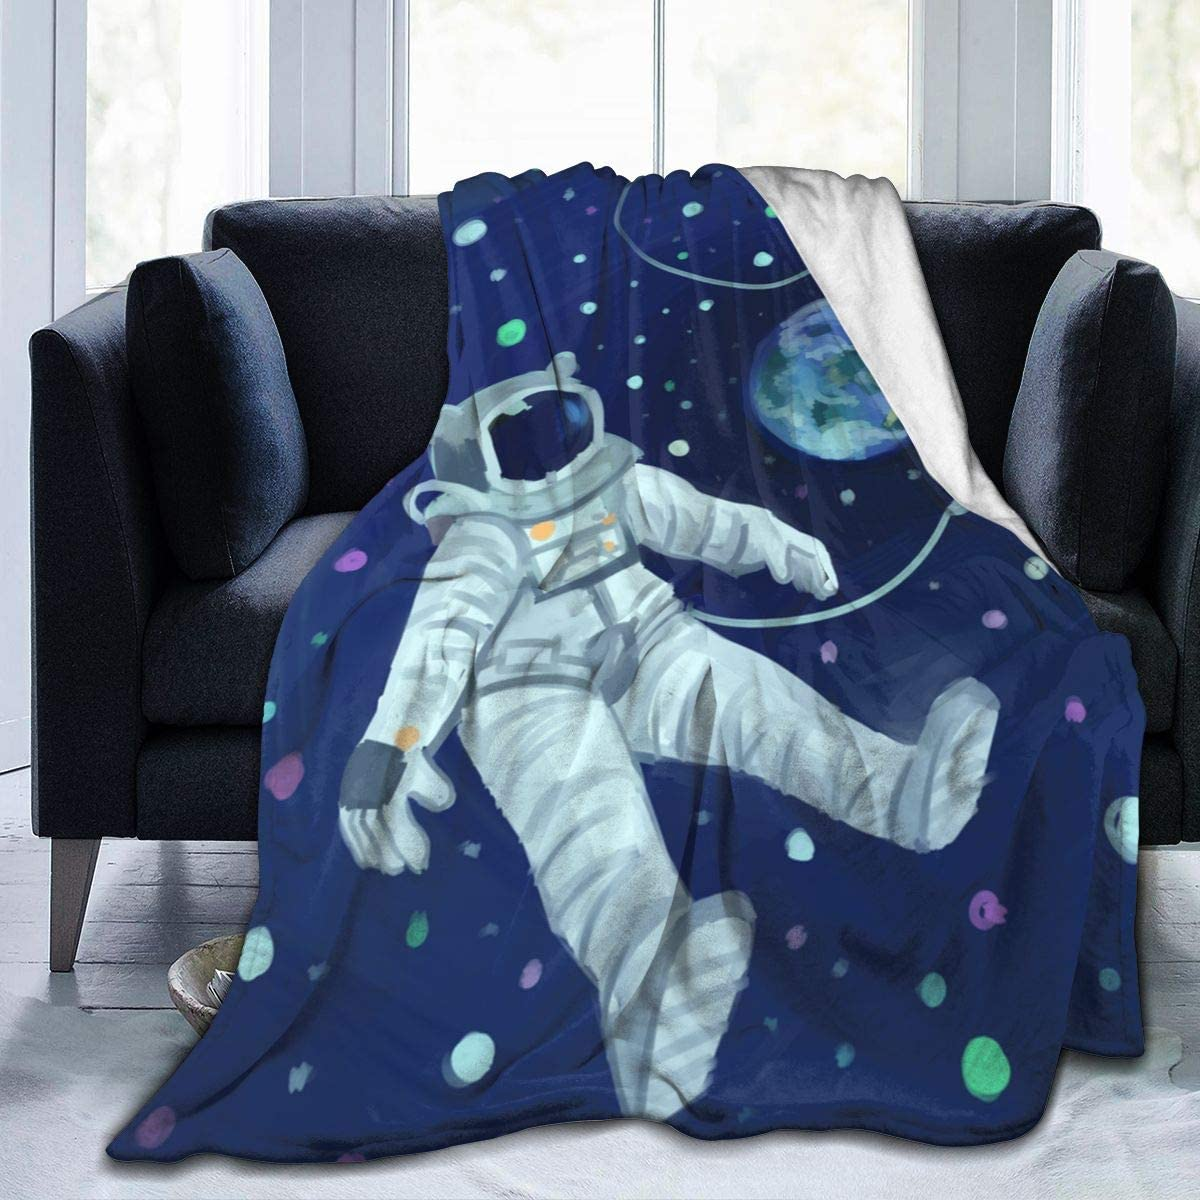 Blanket Throw Outer Space Décor Cute Inspirational Posters Flannel Lightweight Super Soft Cozy Luxury For Kids Adults All-Season Bed Sofa Couch Car Air Conditioning 50